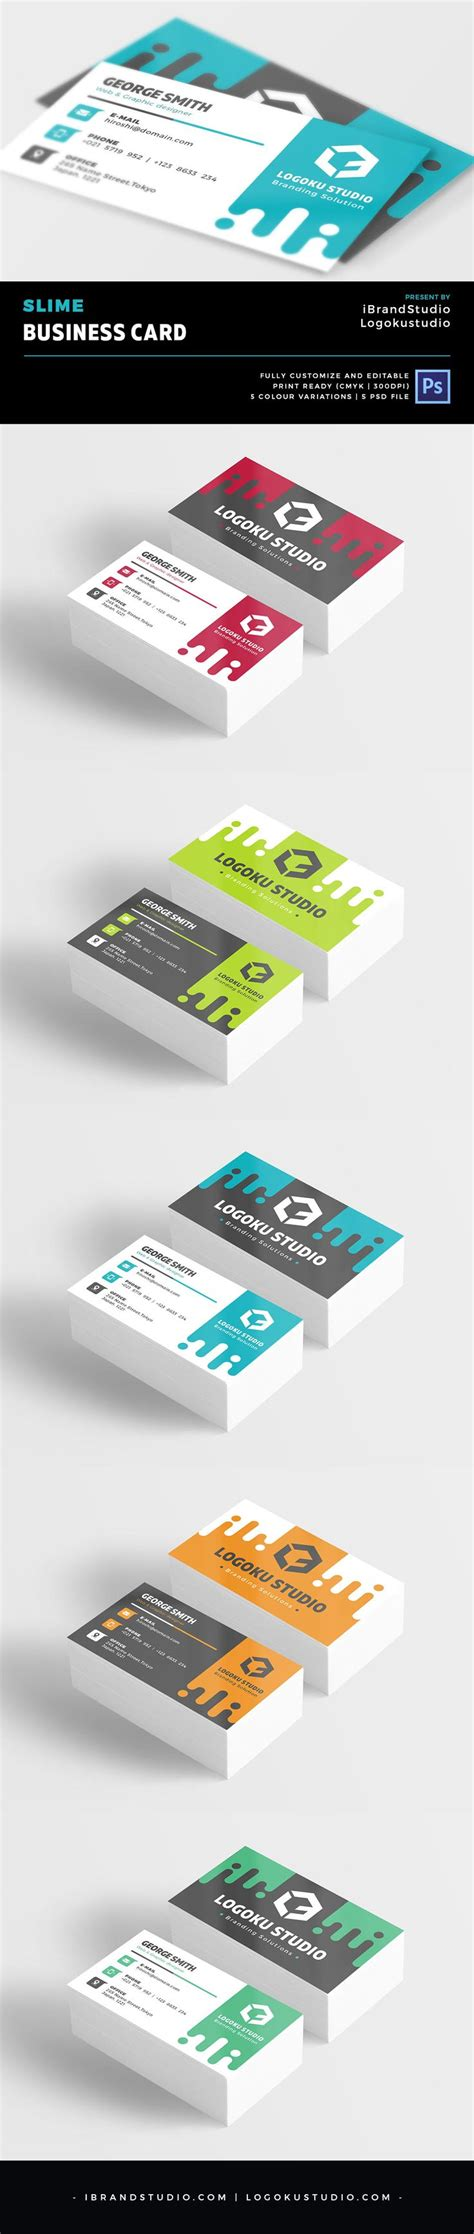 free business card template ms word best plan charlesbutler